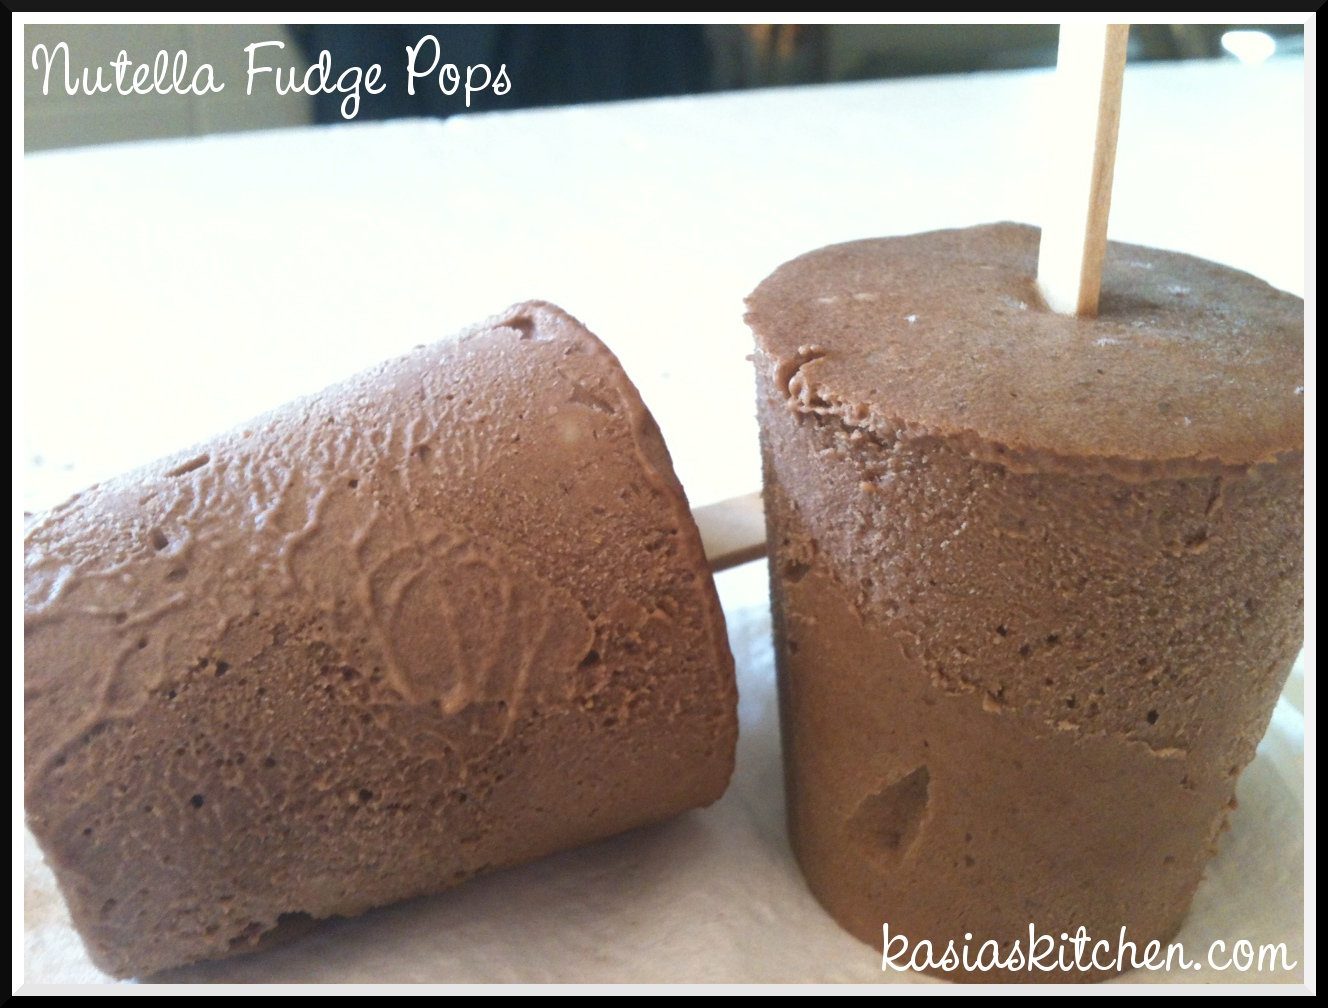 Kasia's Kitchen: Nutella Fudge Pops